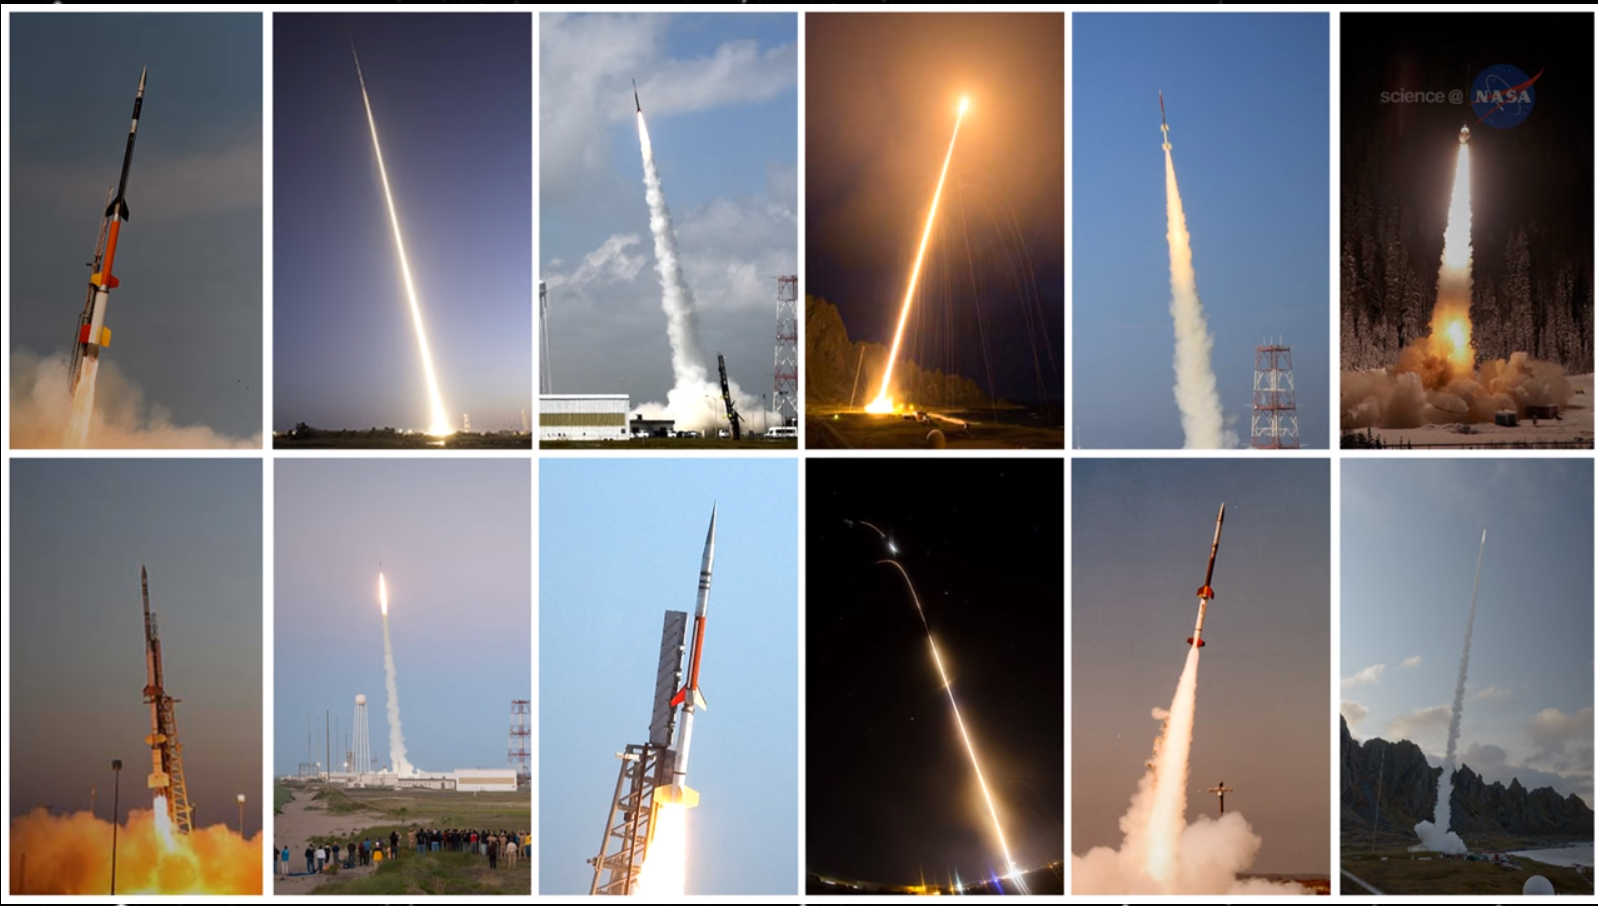 Images of several different sounding rockets